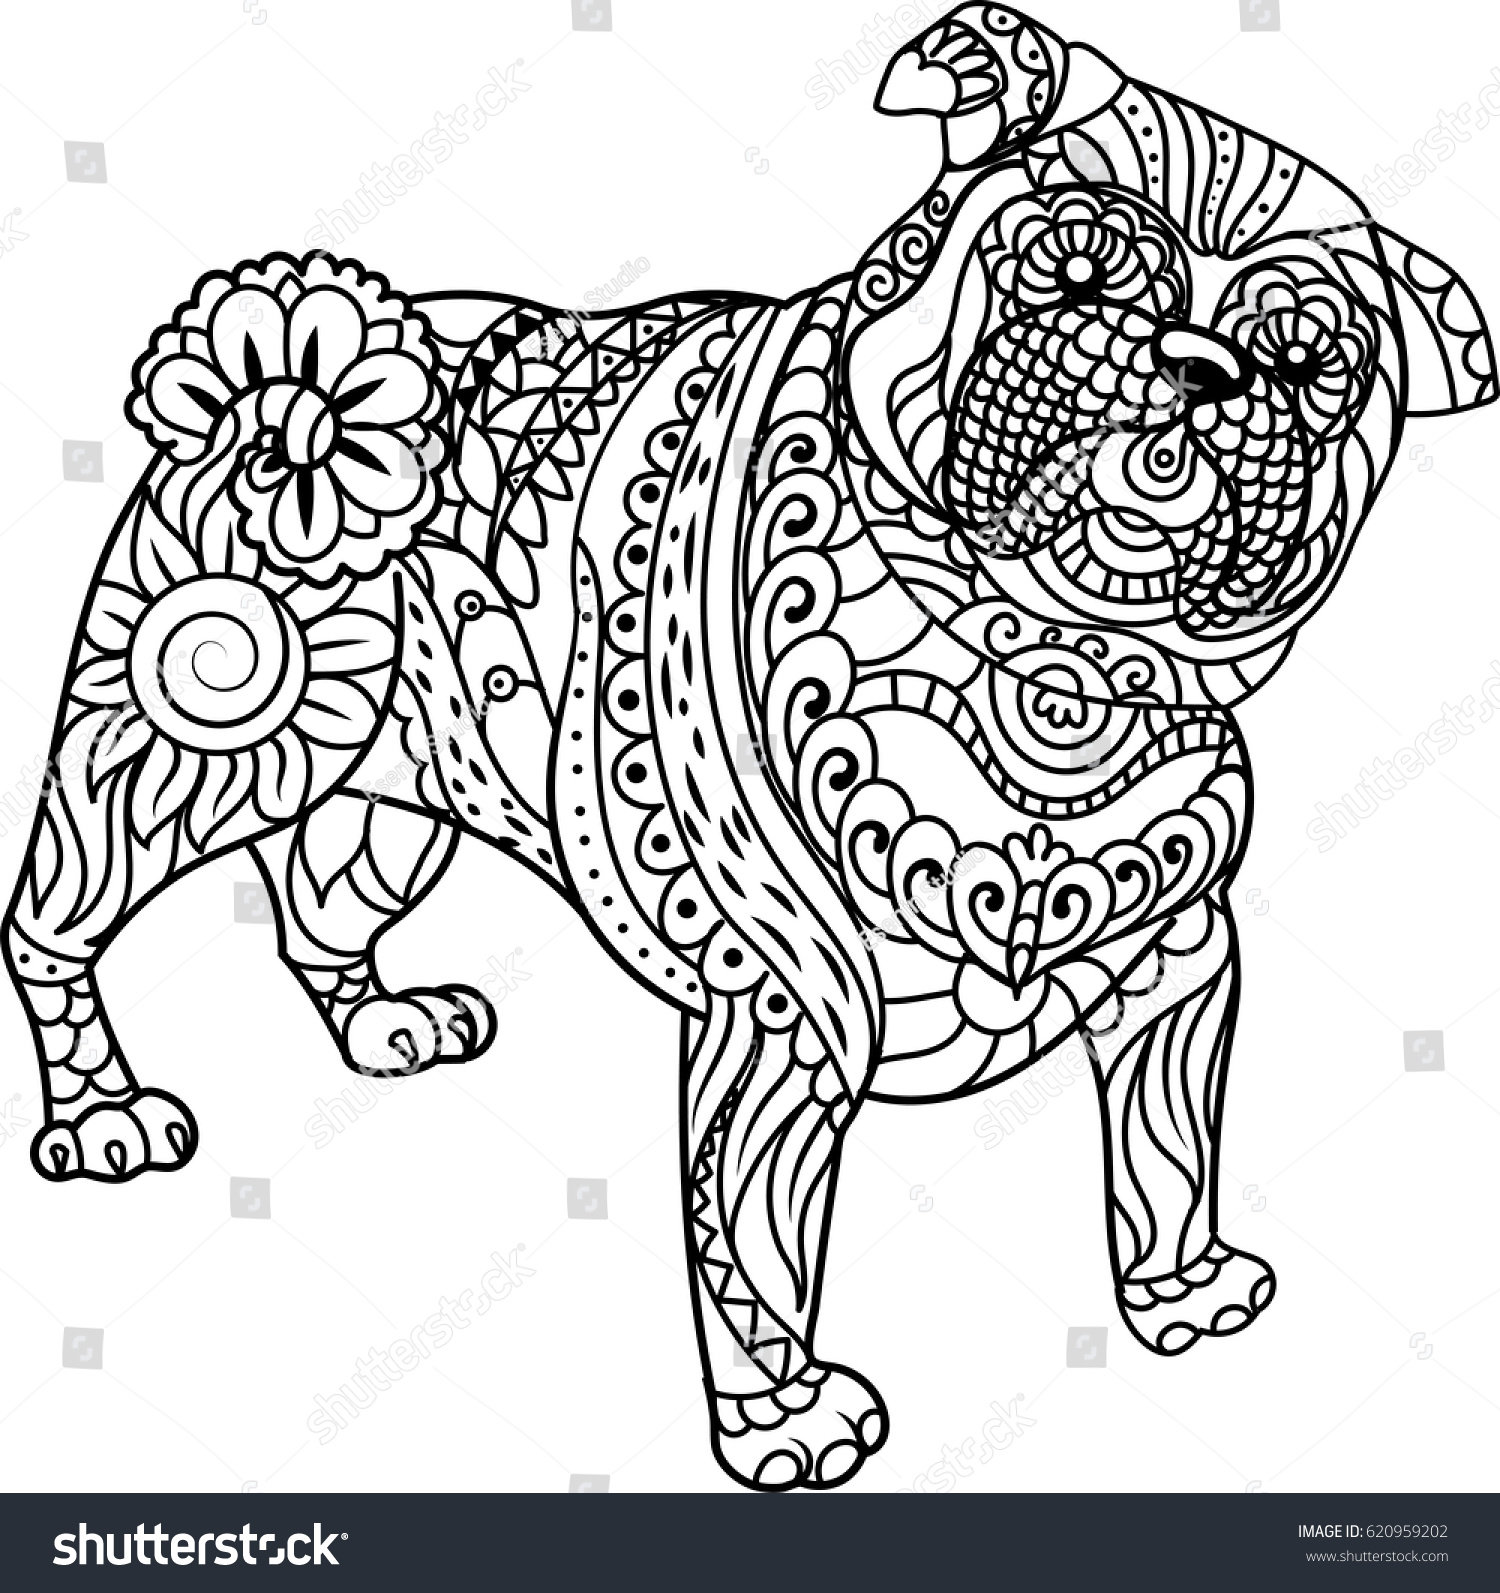 Pug Coloring Pages To Print Elioleracom